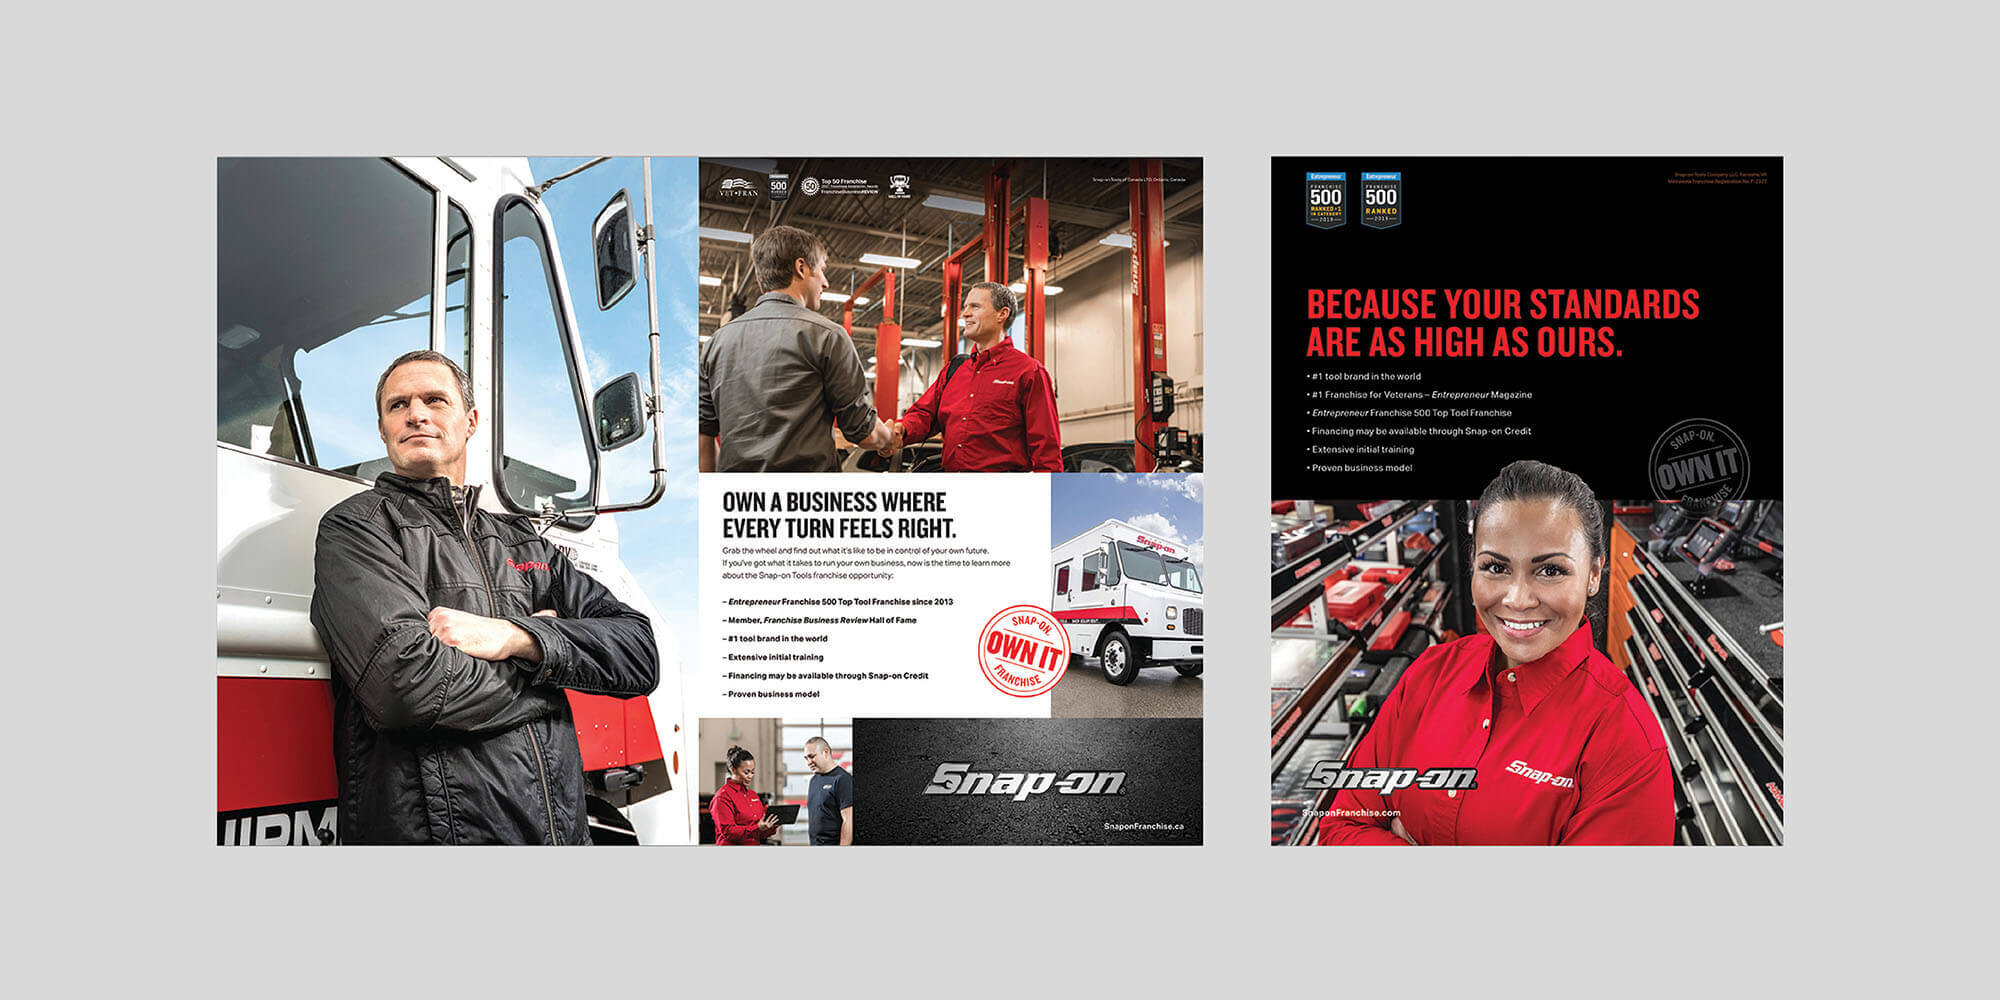 Snap-on Franchise ads creative work